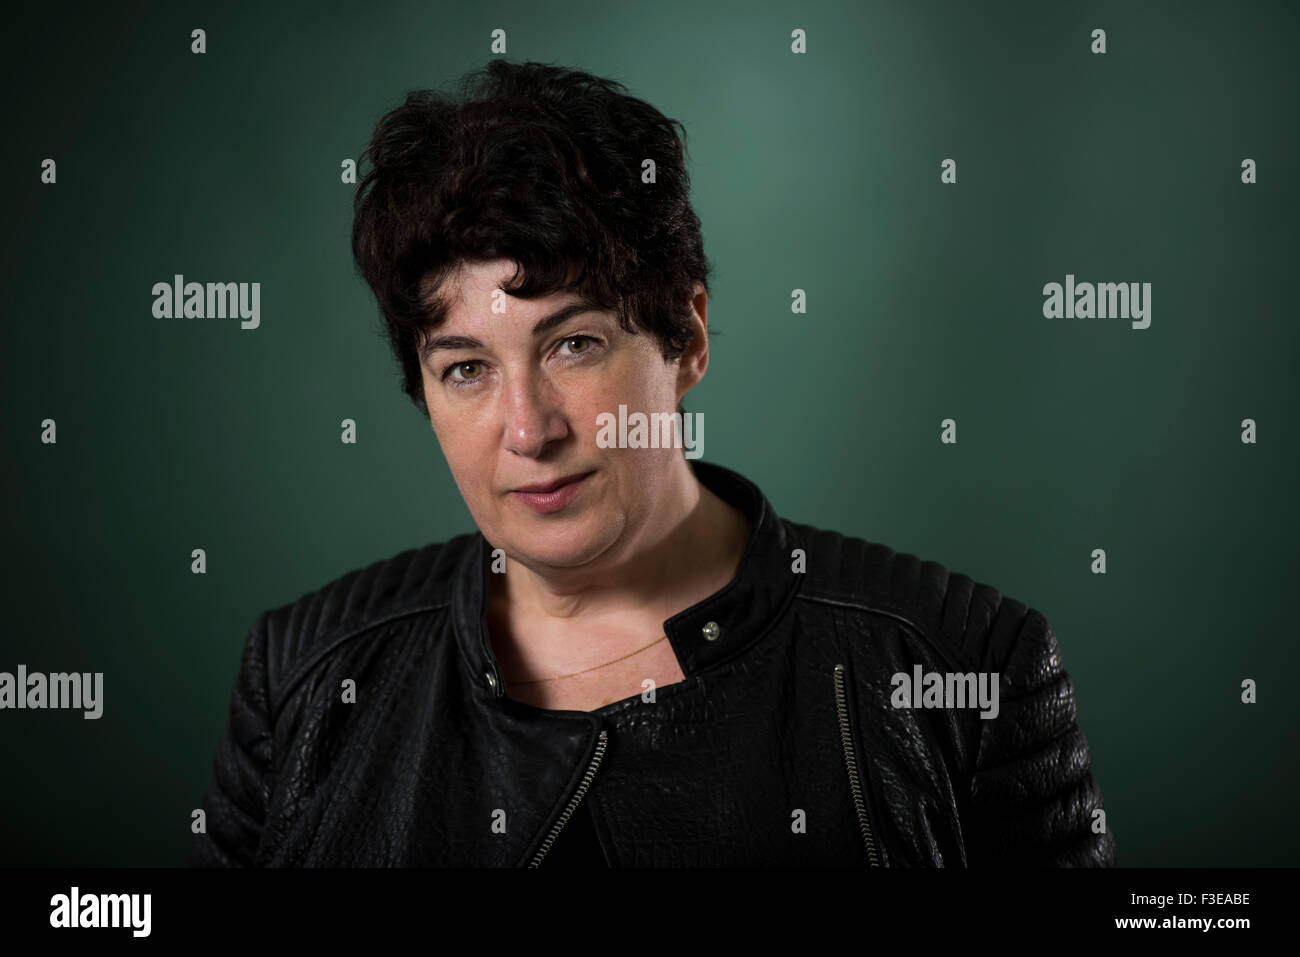 English author of the award-winning novel Chocolat, Joanne Harris. - Stock Image